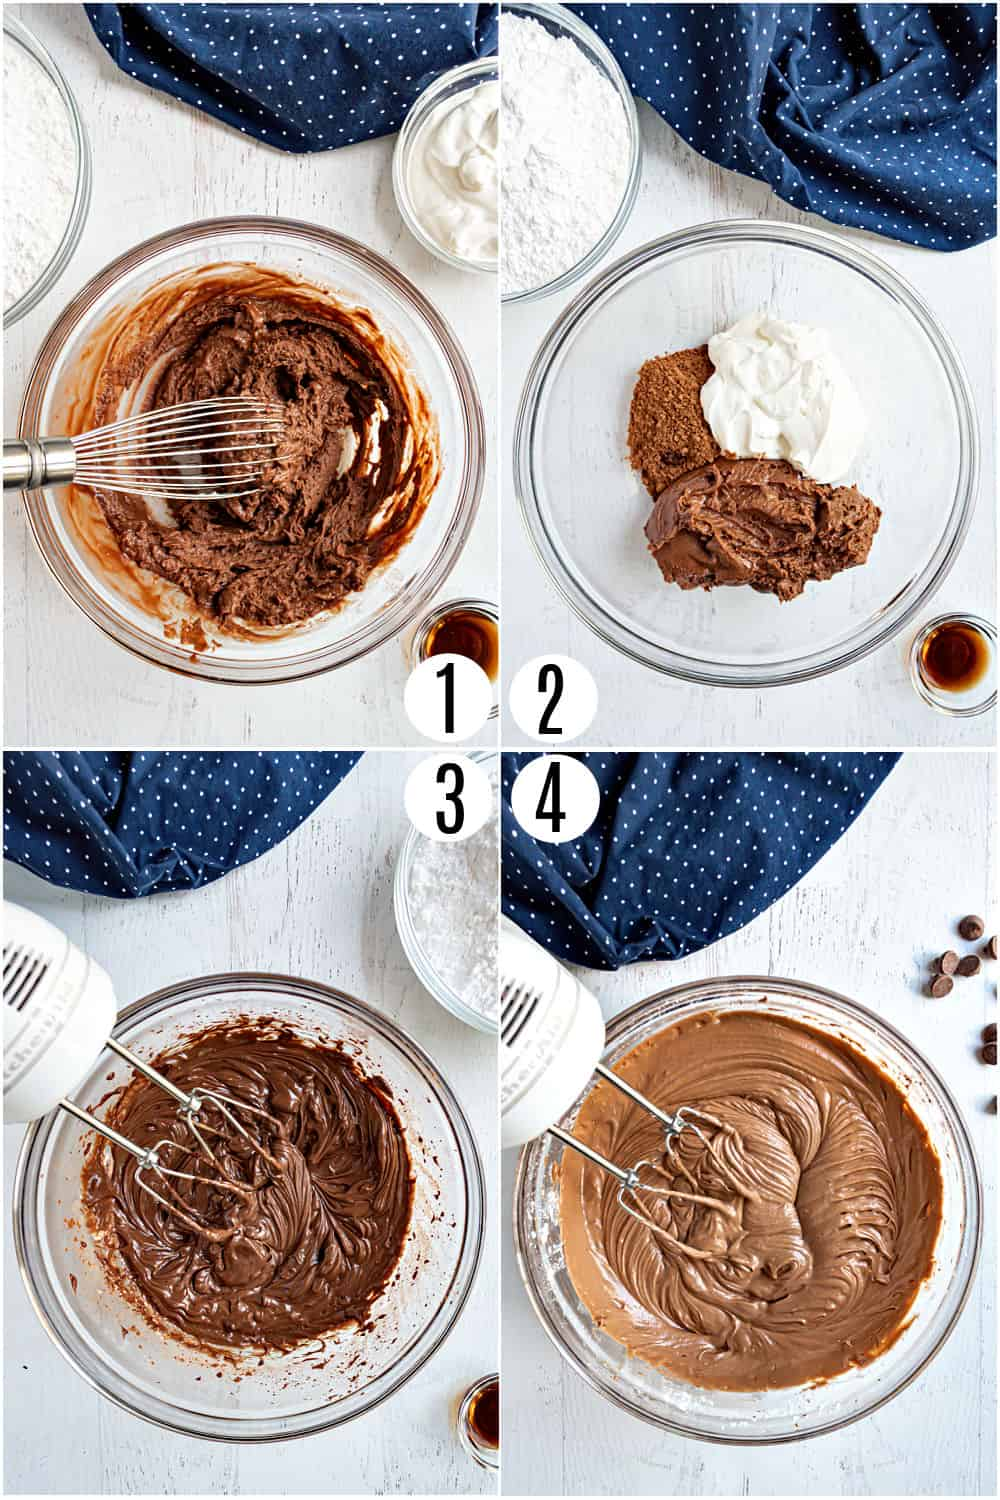 Step by step photos showing how to make chocolate sour cream frosting.